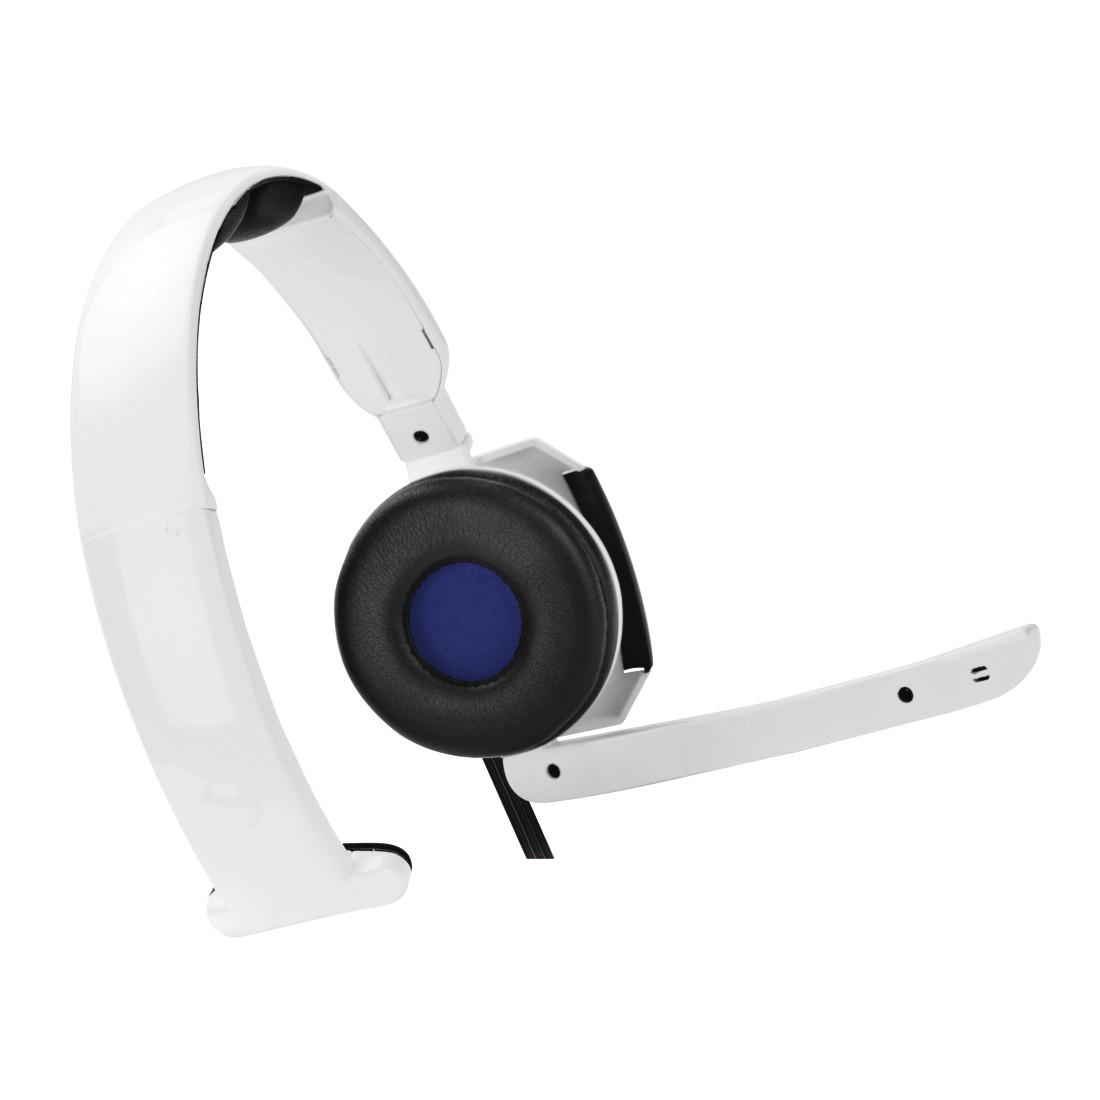 abx2 High-Res Image 2 - Hama, Insomnia VR Mono Overhead Headset for PS4/PS VR